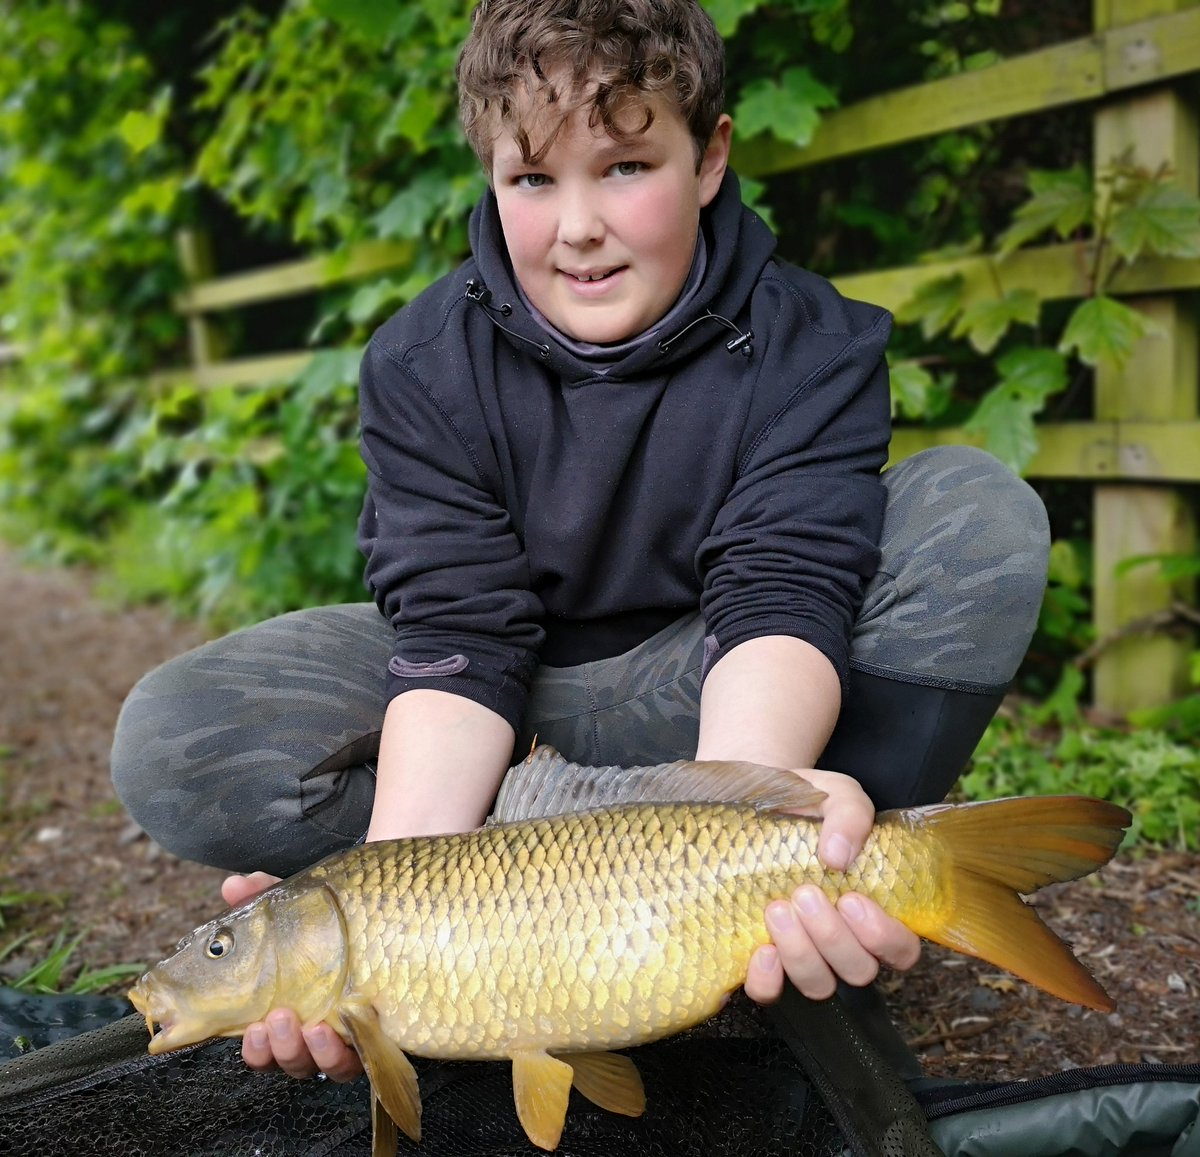 First time my lad tryed #zigs resulted in this 8lb er #carpfishing #fishing #carp #carpy #carpy #<b>